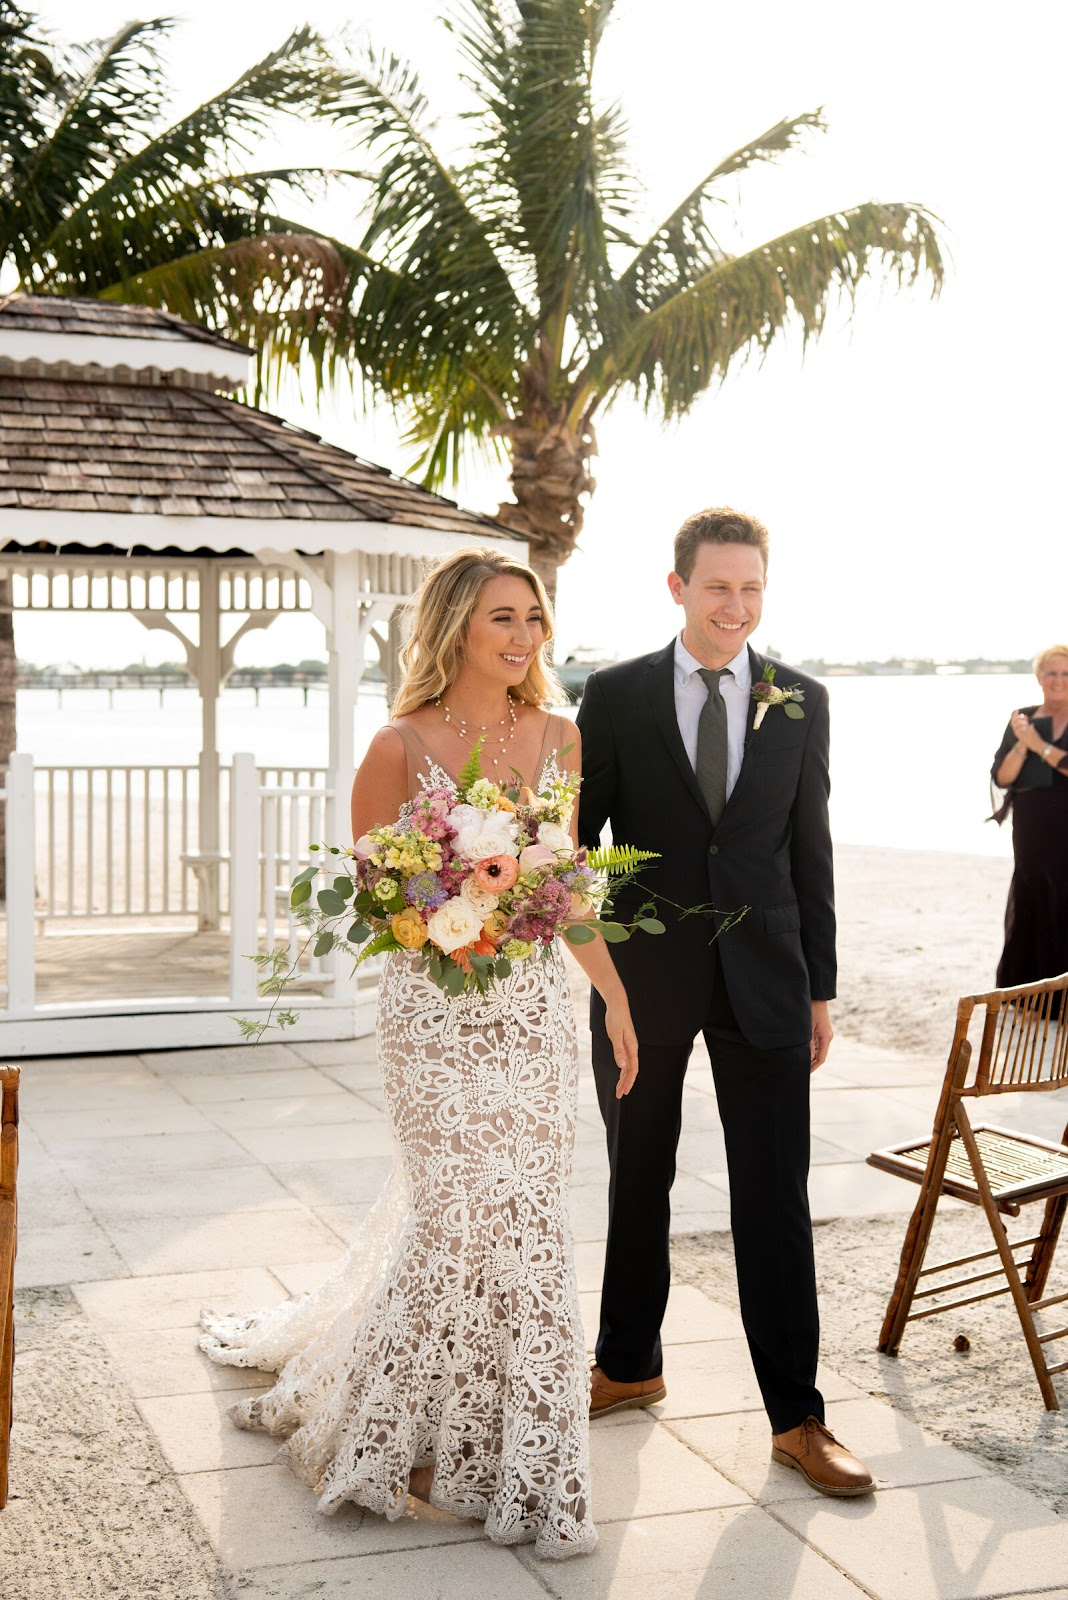 Beach, Please! Here's the Pros and Cons of Planning a Beach Wedding